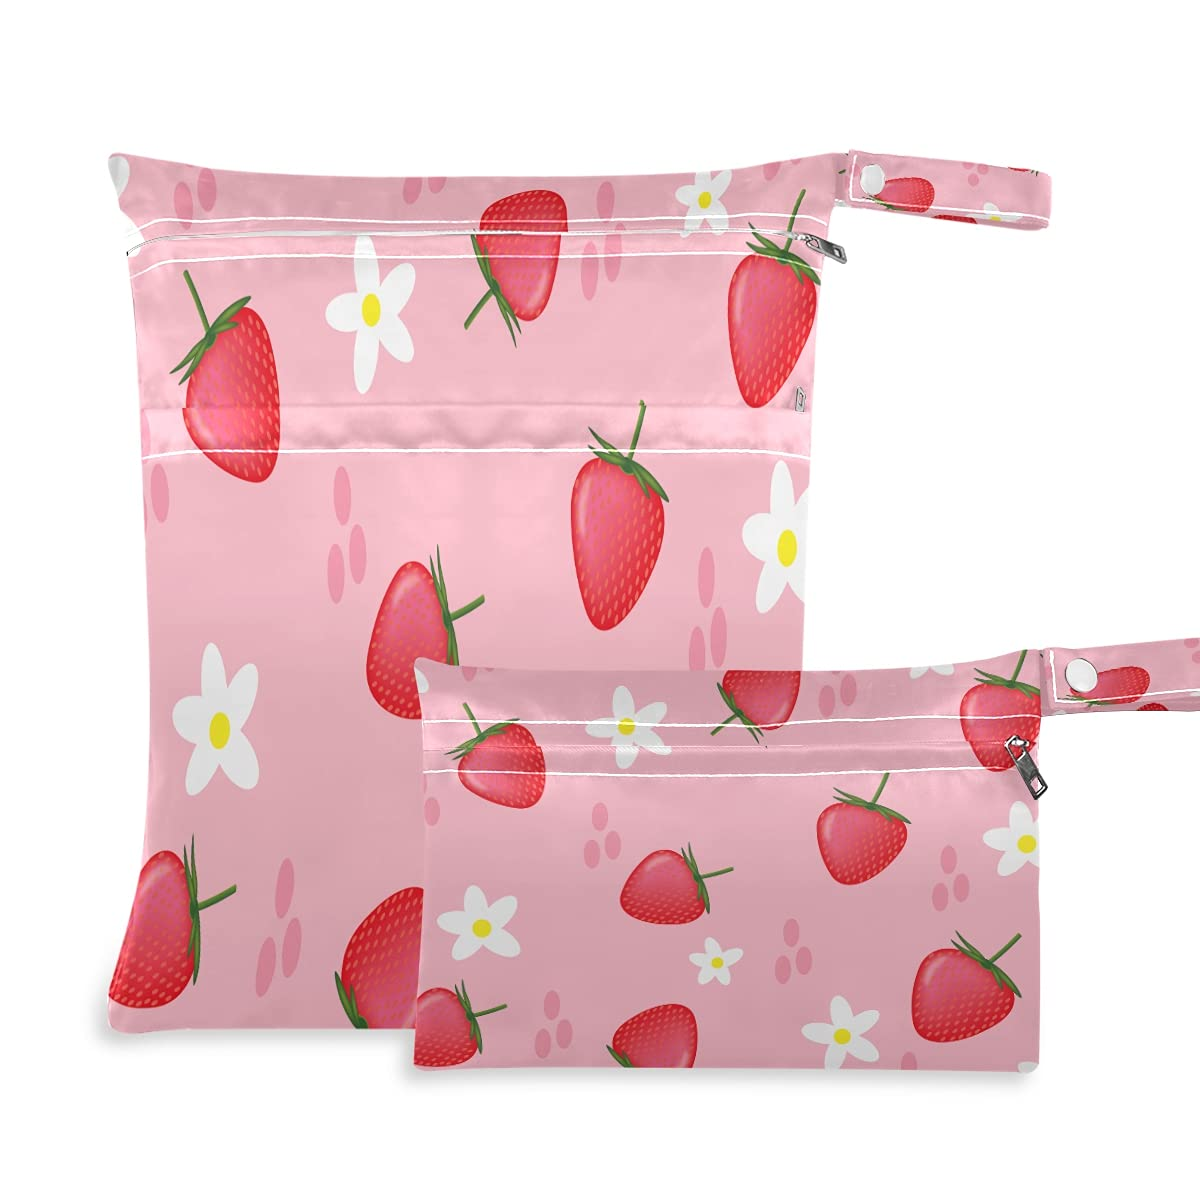 Wet and Dry Bag for San Jose Mall Baby Super Special SALE held Sets Diaper Cloth Waterproof Reusa 2pcs